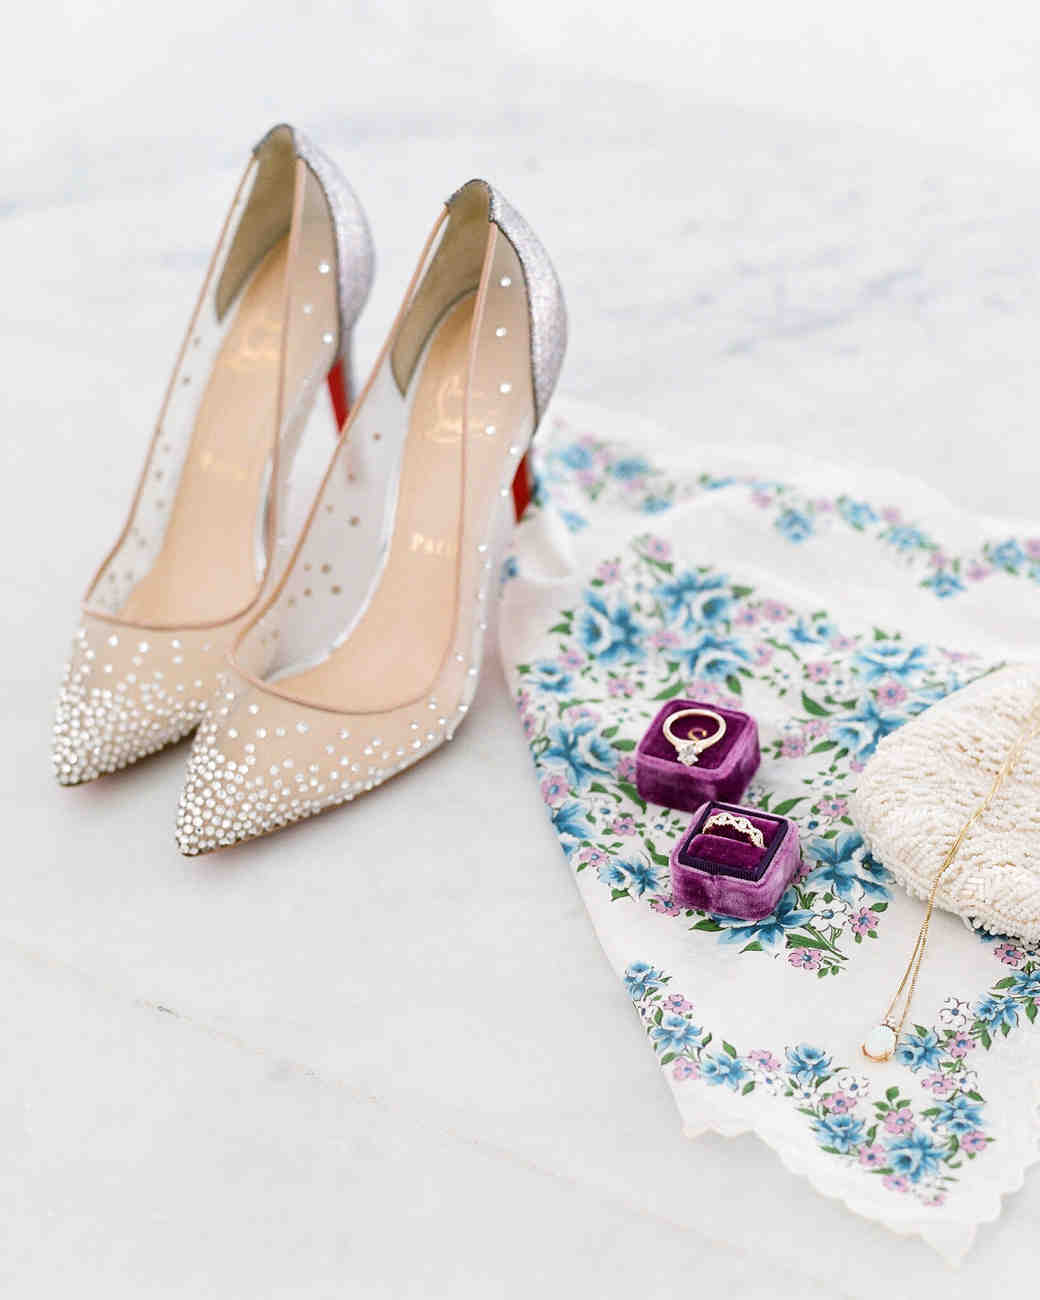 cebfa0e417e5 40 Wedding Shoes That Are Worthy of an Instagram